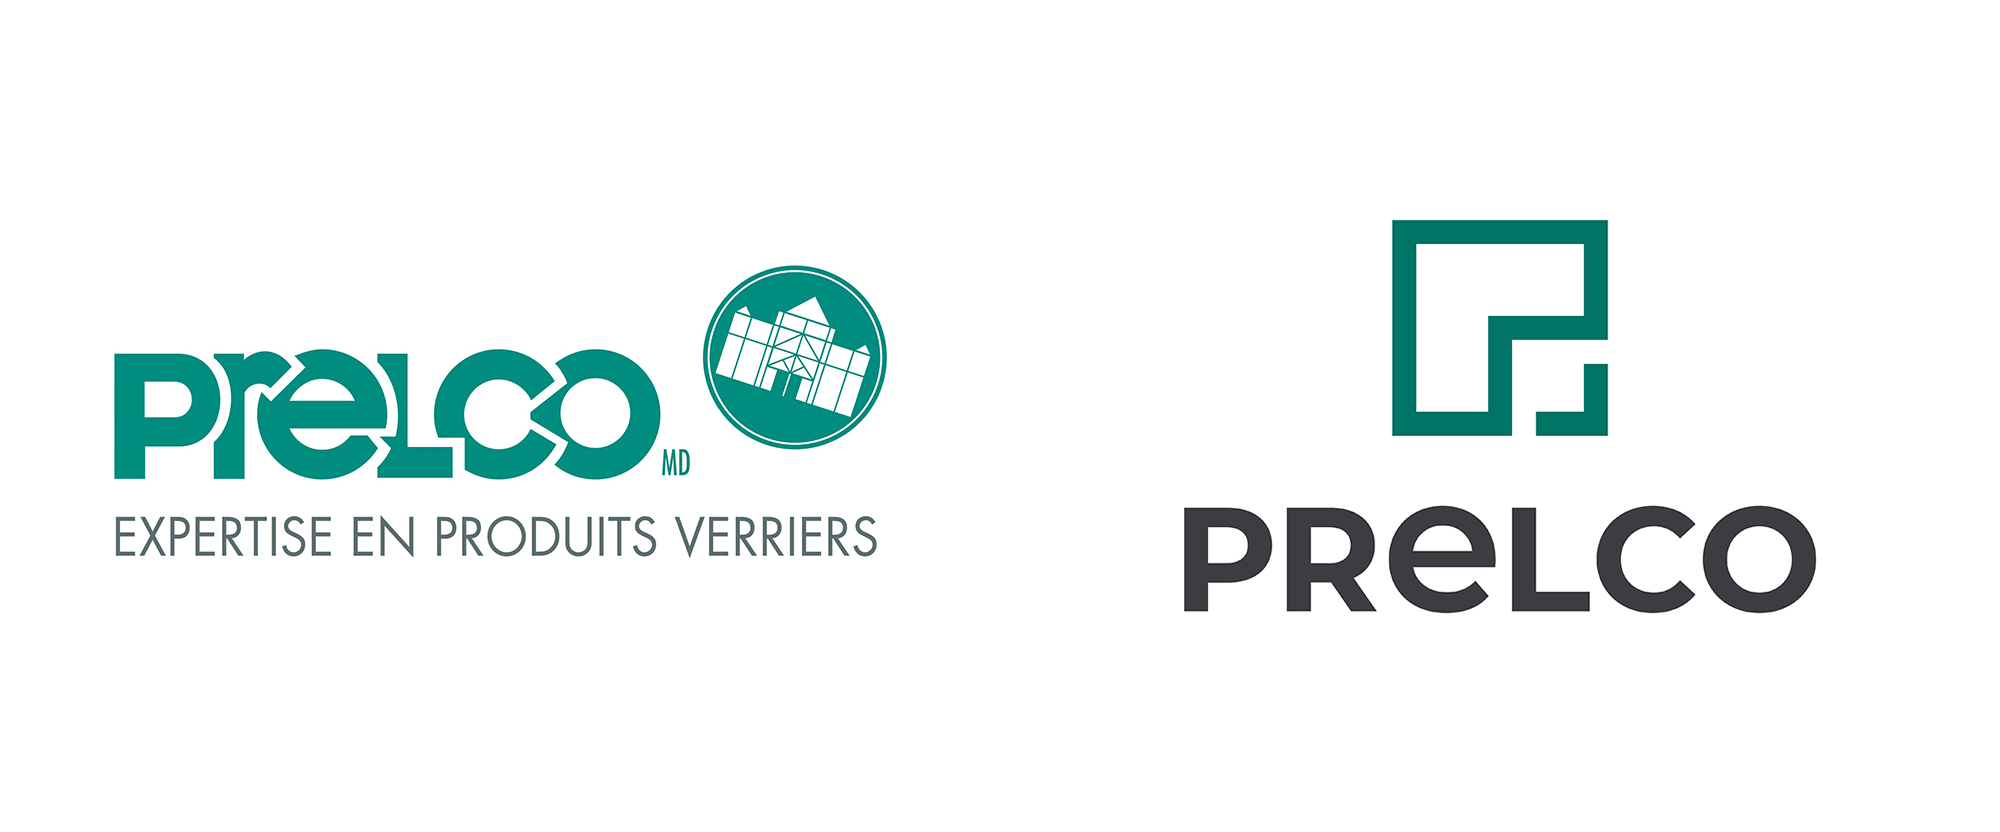 New Logo and Identity for Prelco by Phosphore